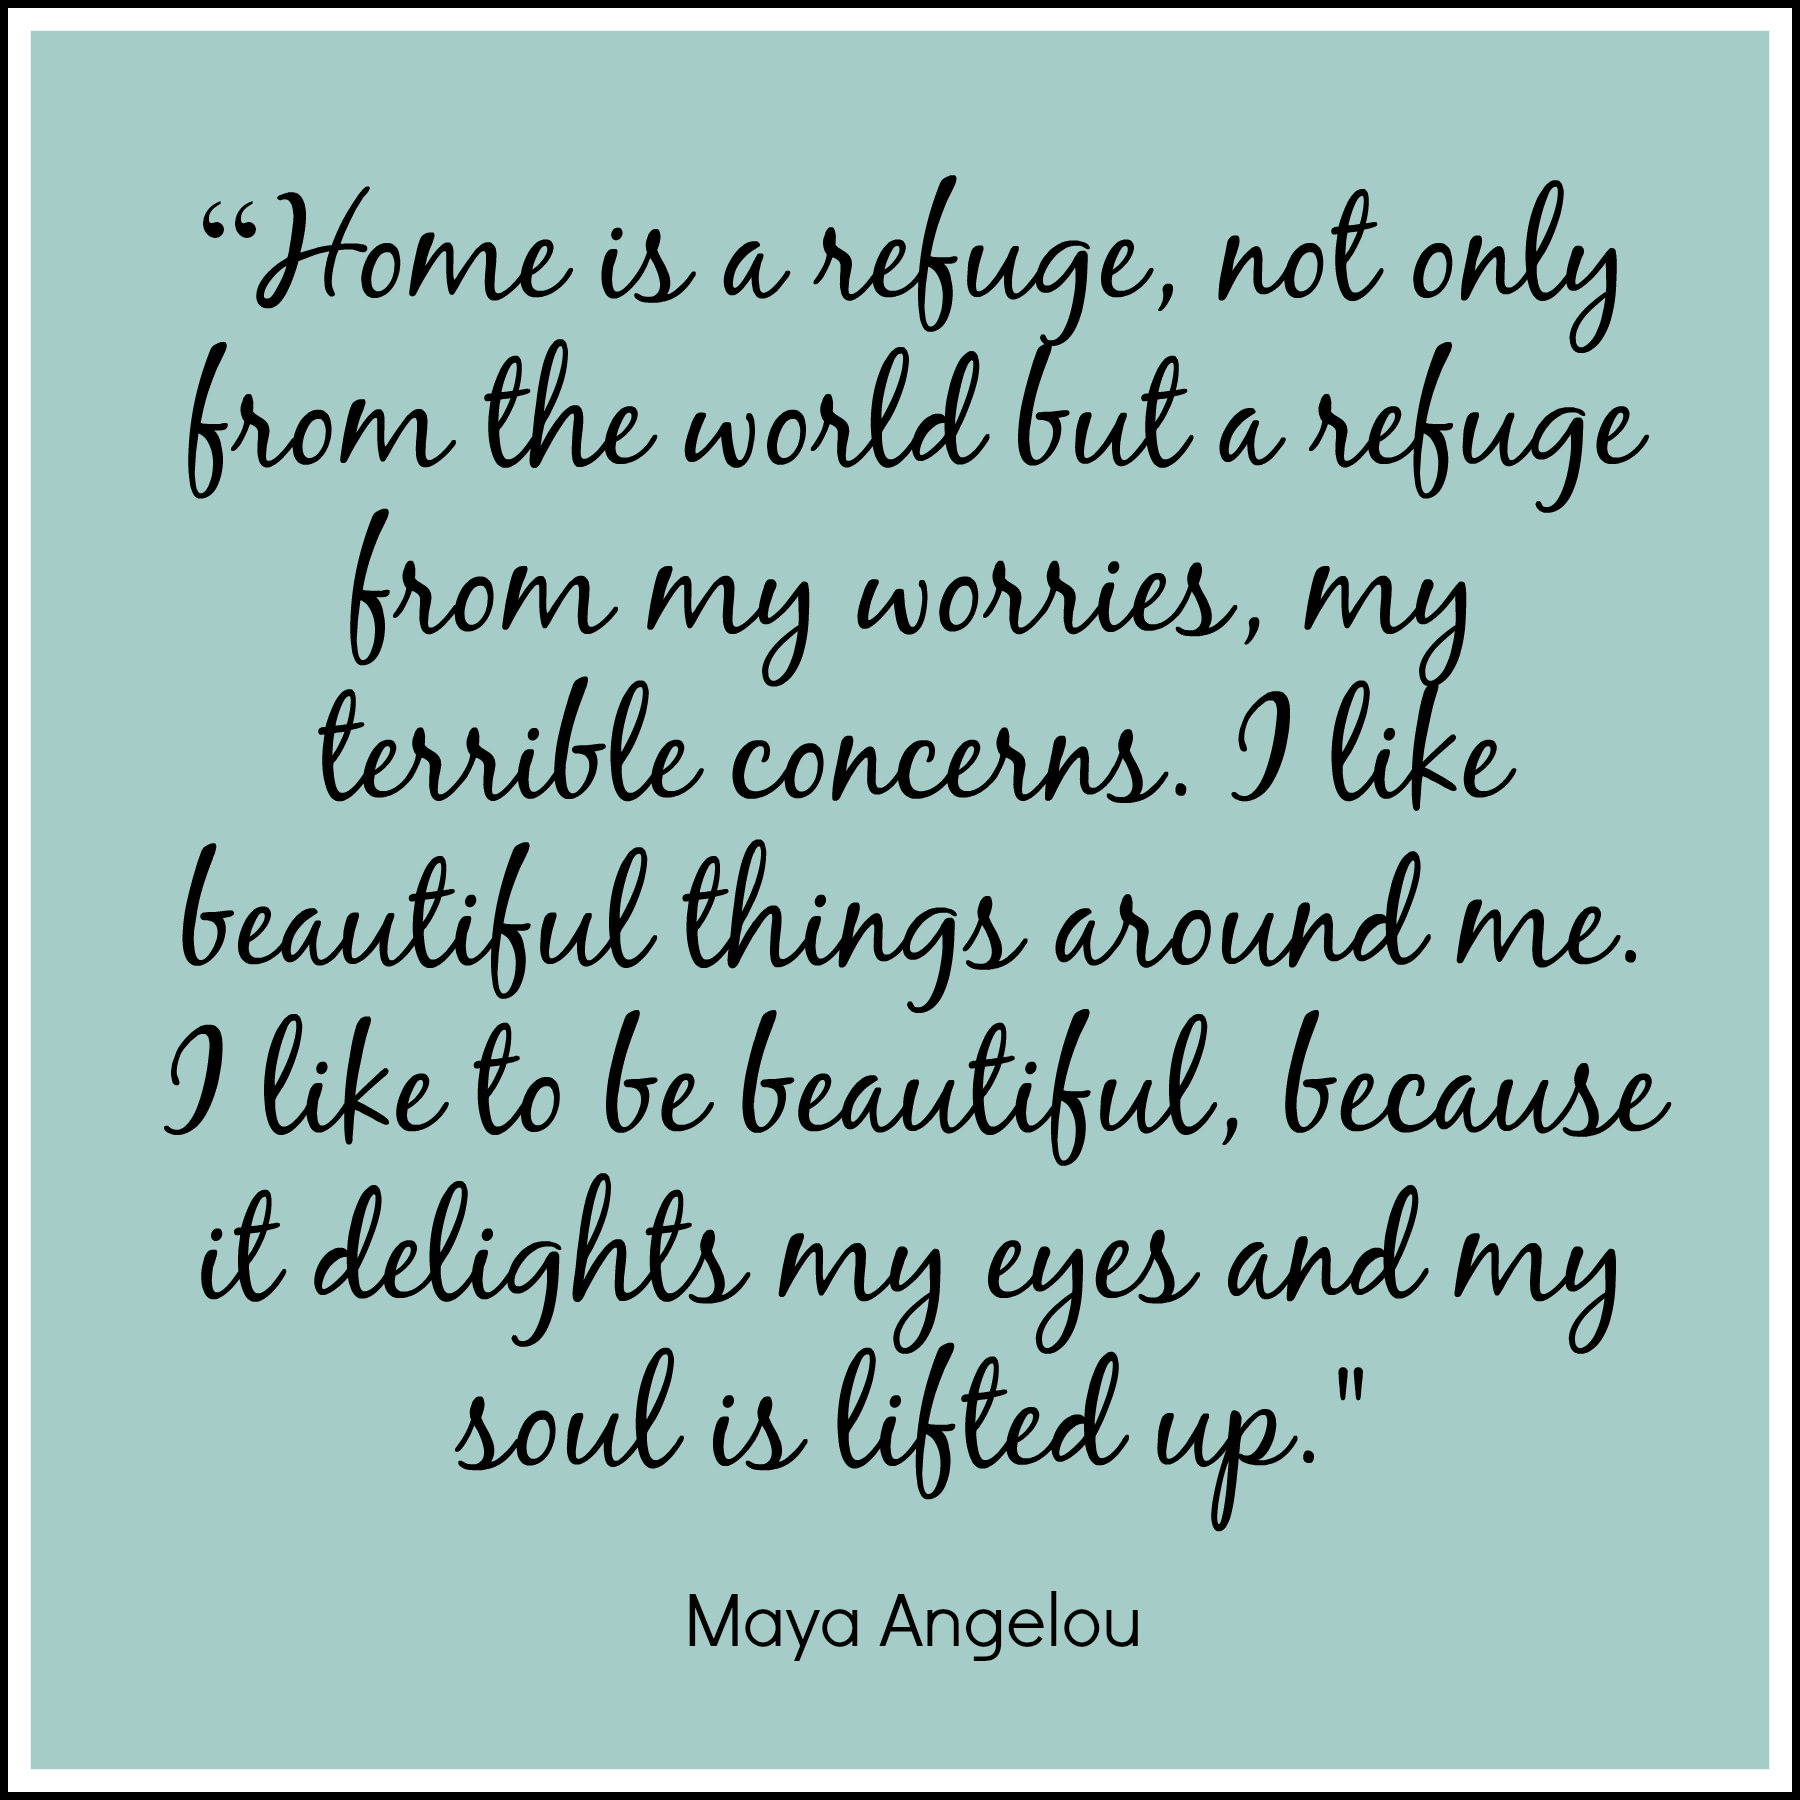 Maya Angelou Quotes About Friendship Quotes About Friendship From Maya Angelou Maya Angelou Poems And